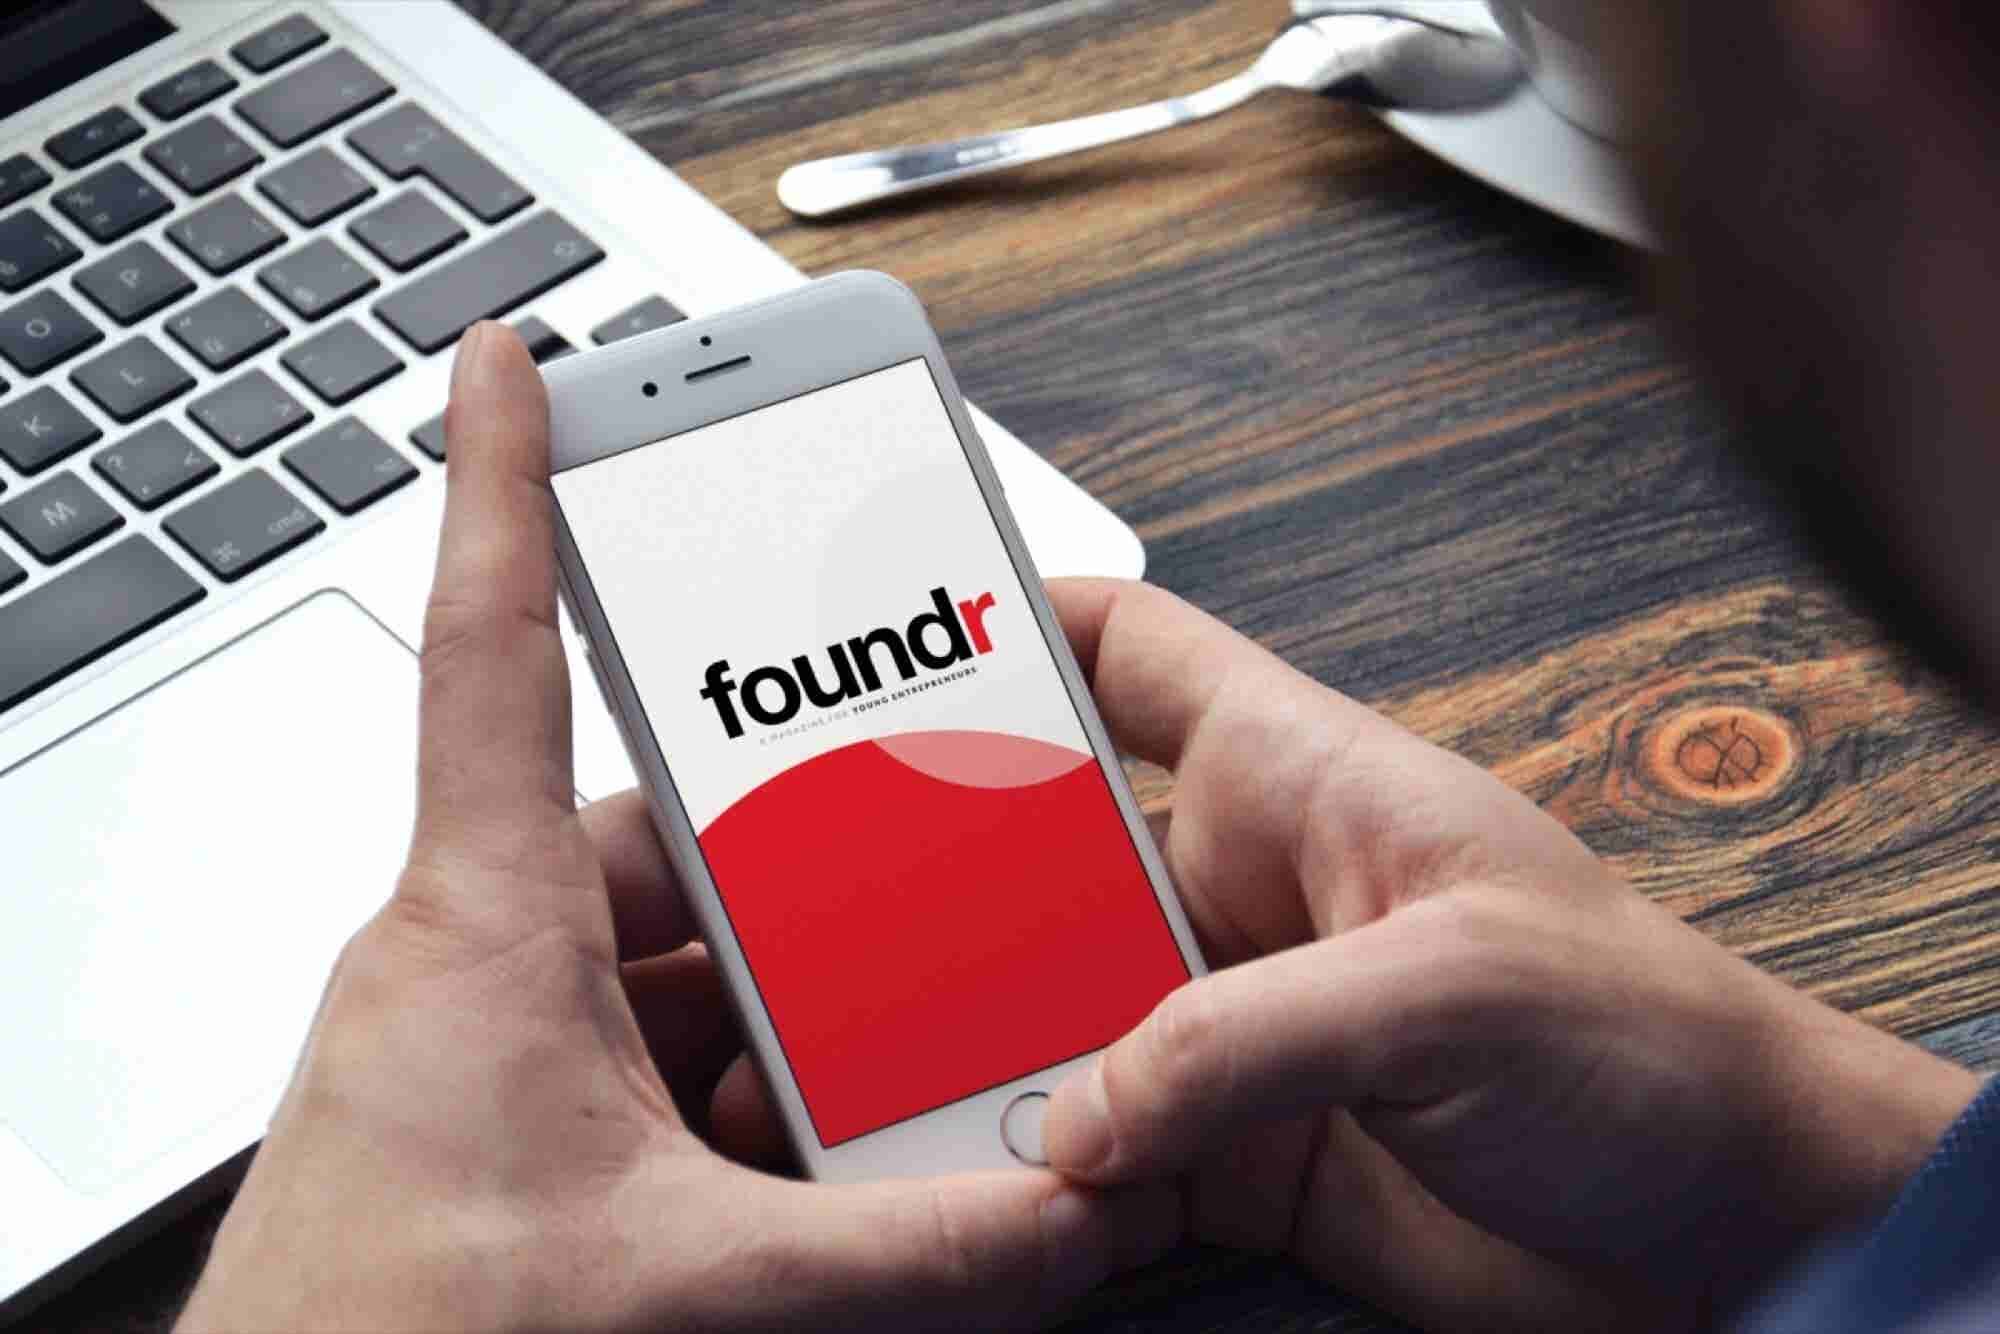 Should You Offer Premium Content, or No? The Publisher of 'Foundr' Weighs in.